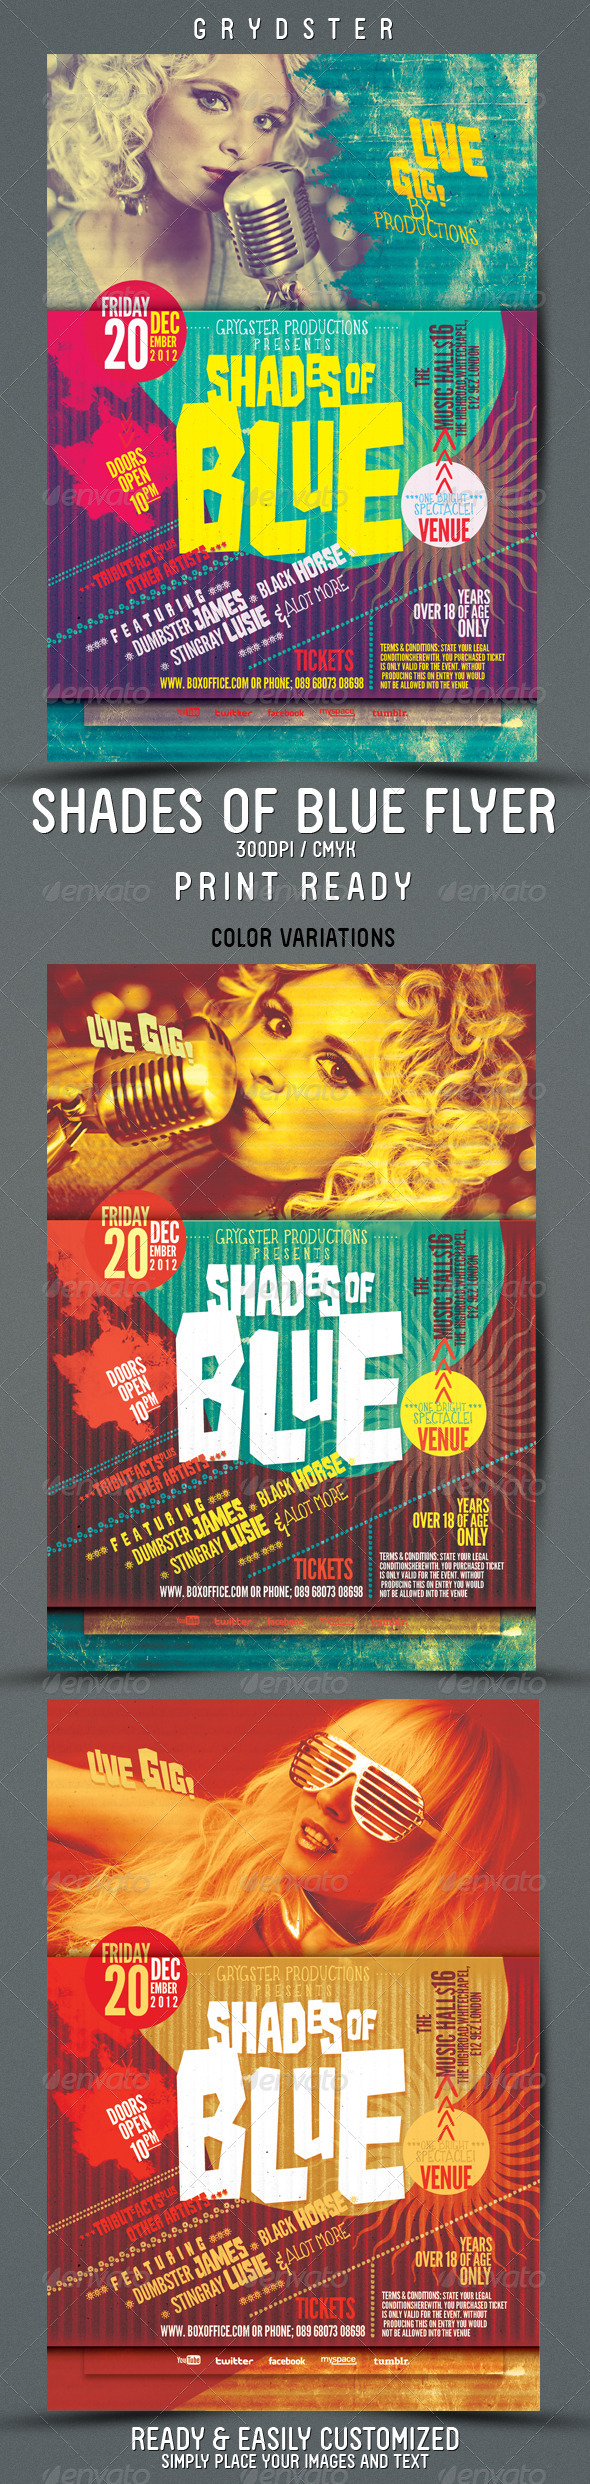 GraphicRiver Shades of Blue Flyer 3465850